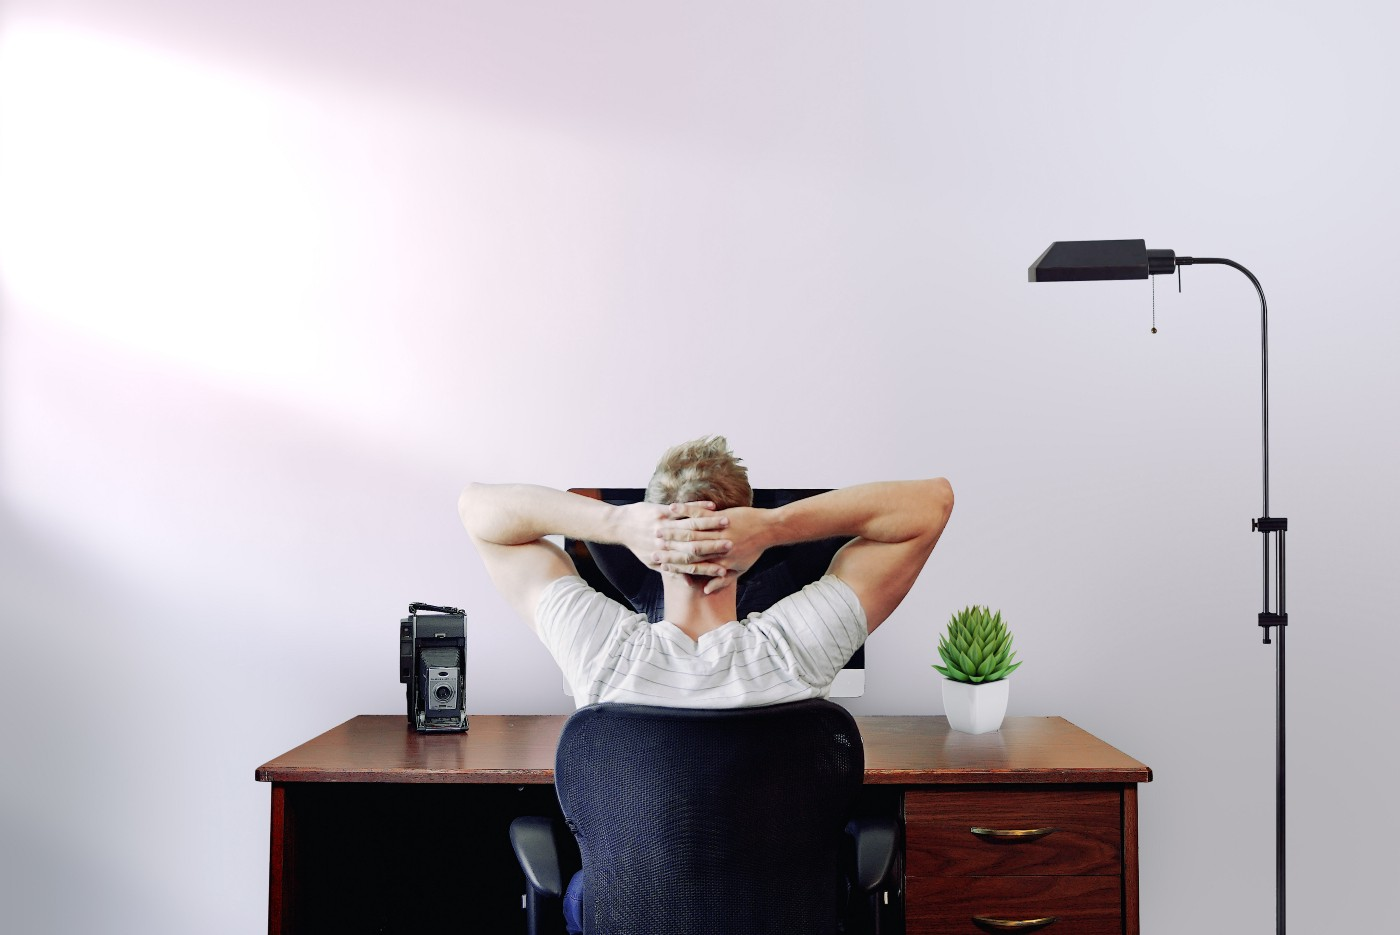 Will work from home destroy work?